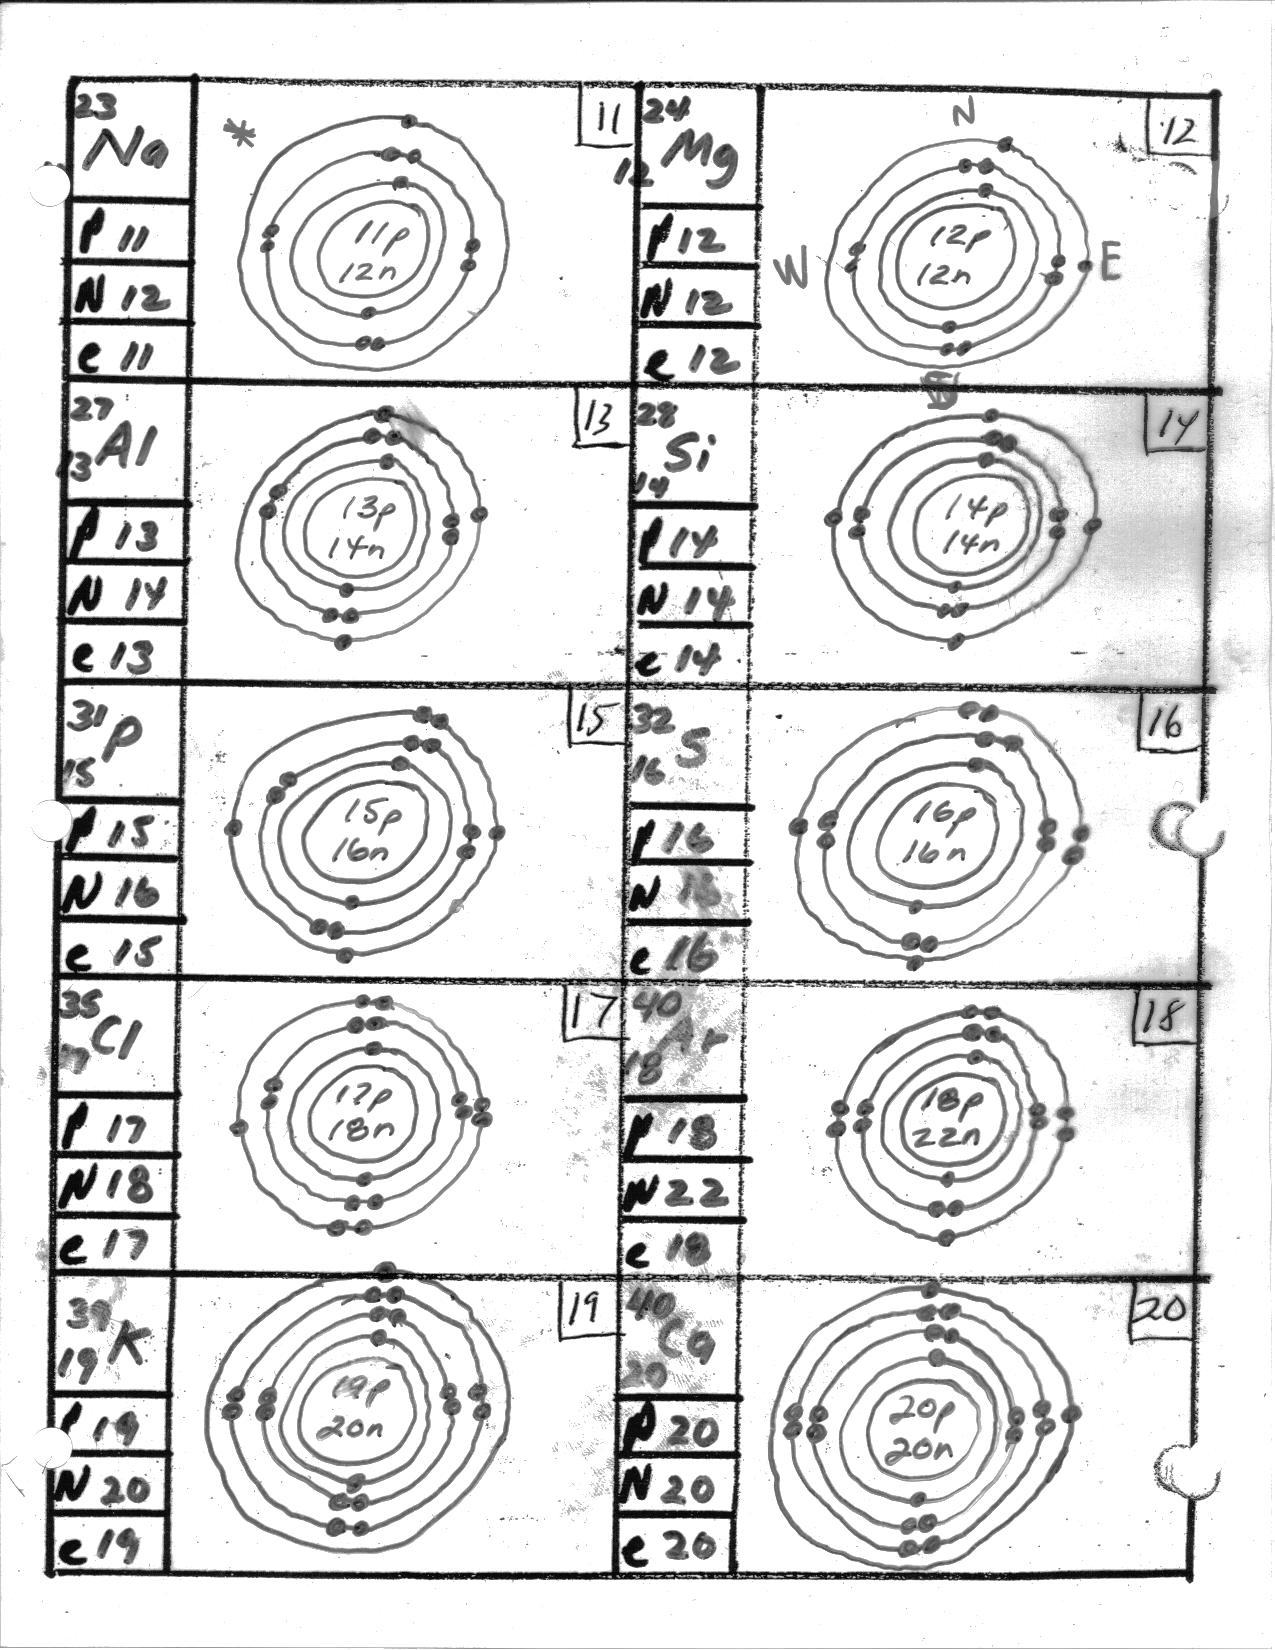 Worksheets Bohr Model Worksheet toxic science bohr rutherford diagrams 1 10 11 20